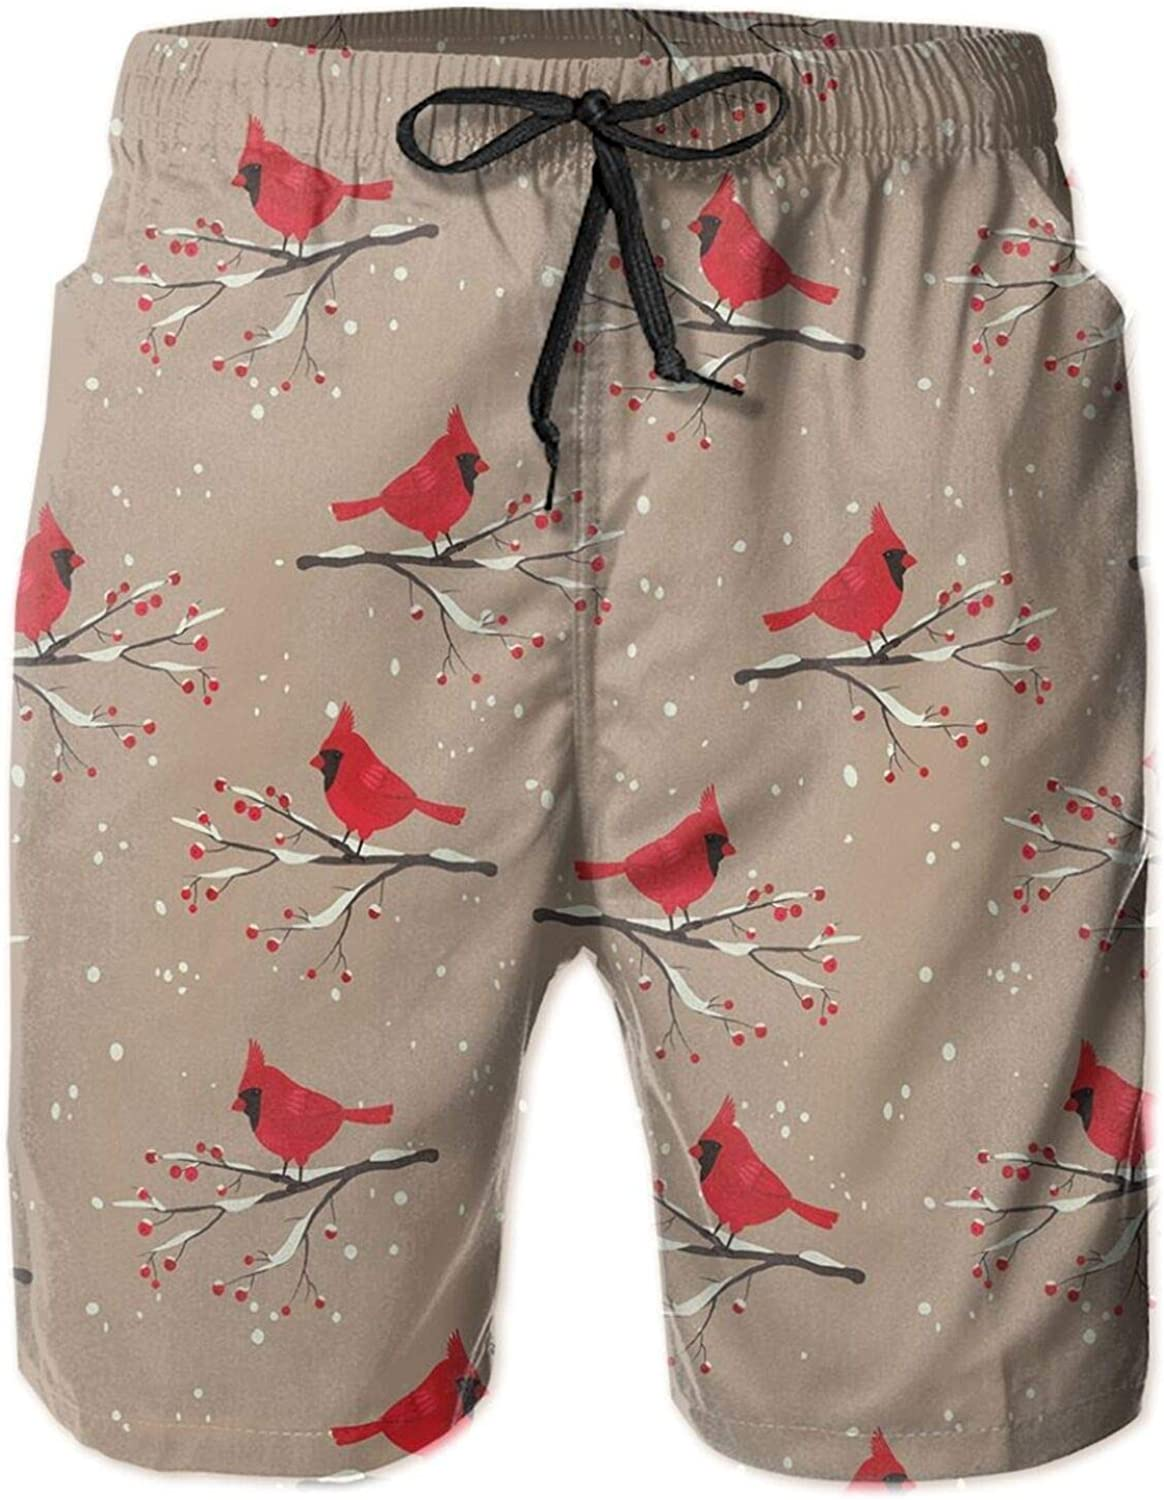 Cardinal Bird Silhouettes On Snowy Berry Branches On Abstract Background Drawstring Waist Beach Shorts for Men Swim Trucks Board Shorts with Mesh Lining,M